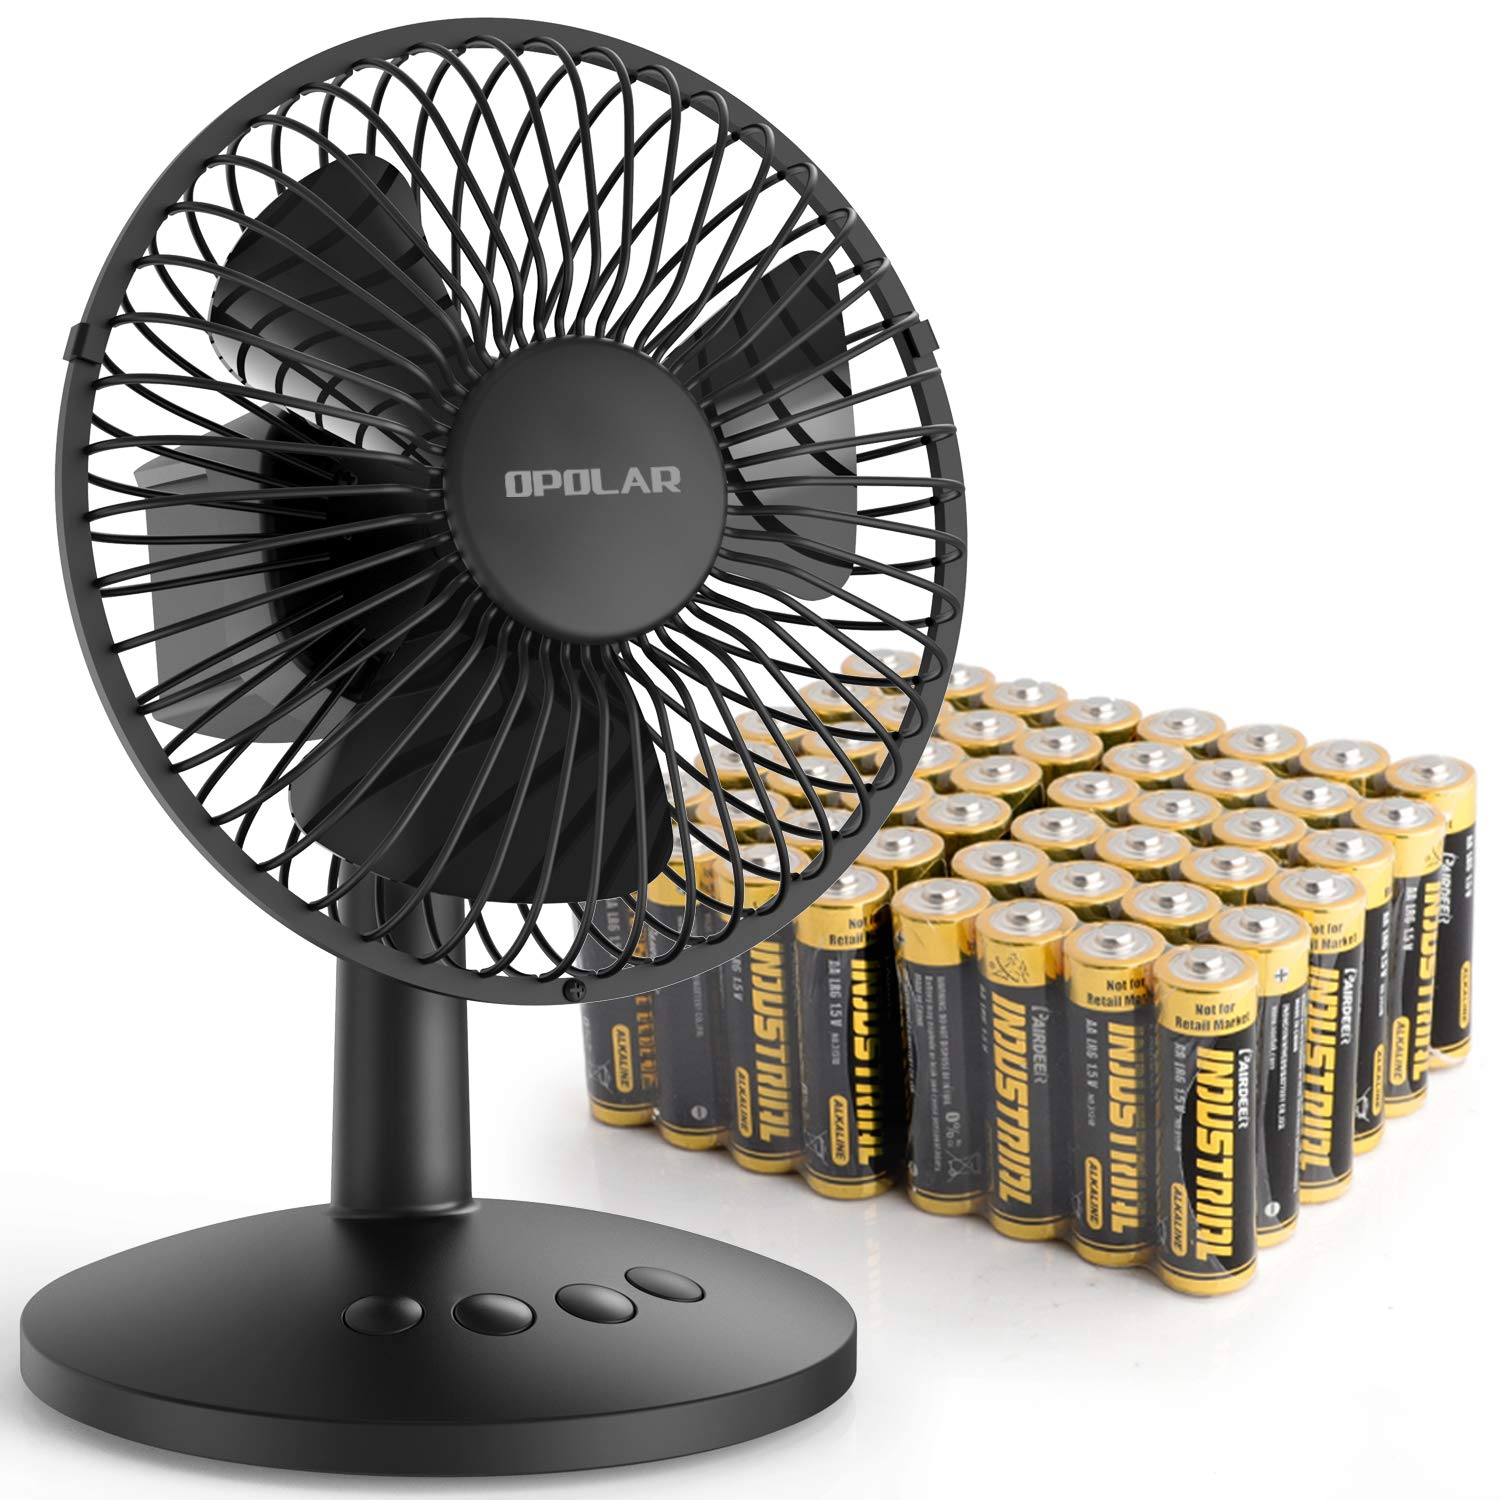 OPOLAR Mini Oscillating Desk Fan, Come with 48 AA Batteries, USB or AA Battery Operated Small Desk Fan, 3 Speeds, Personal Portable Fan with Quiet and Strong Airflow